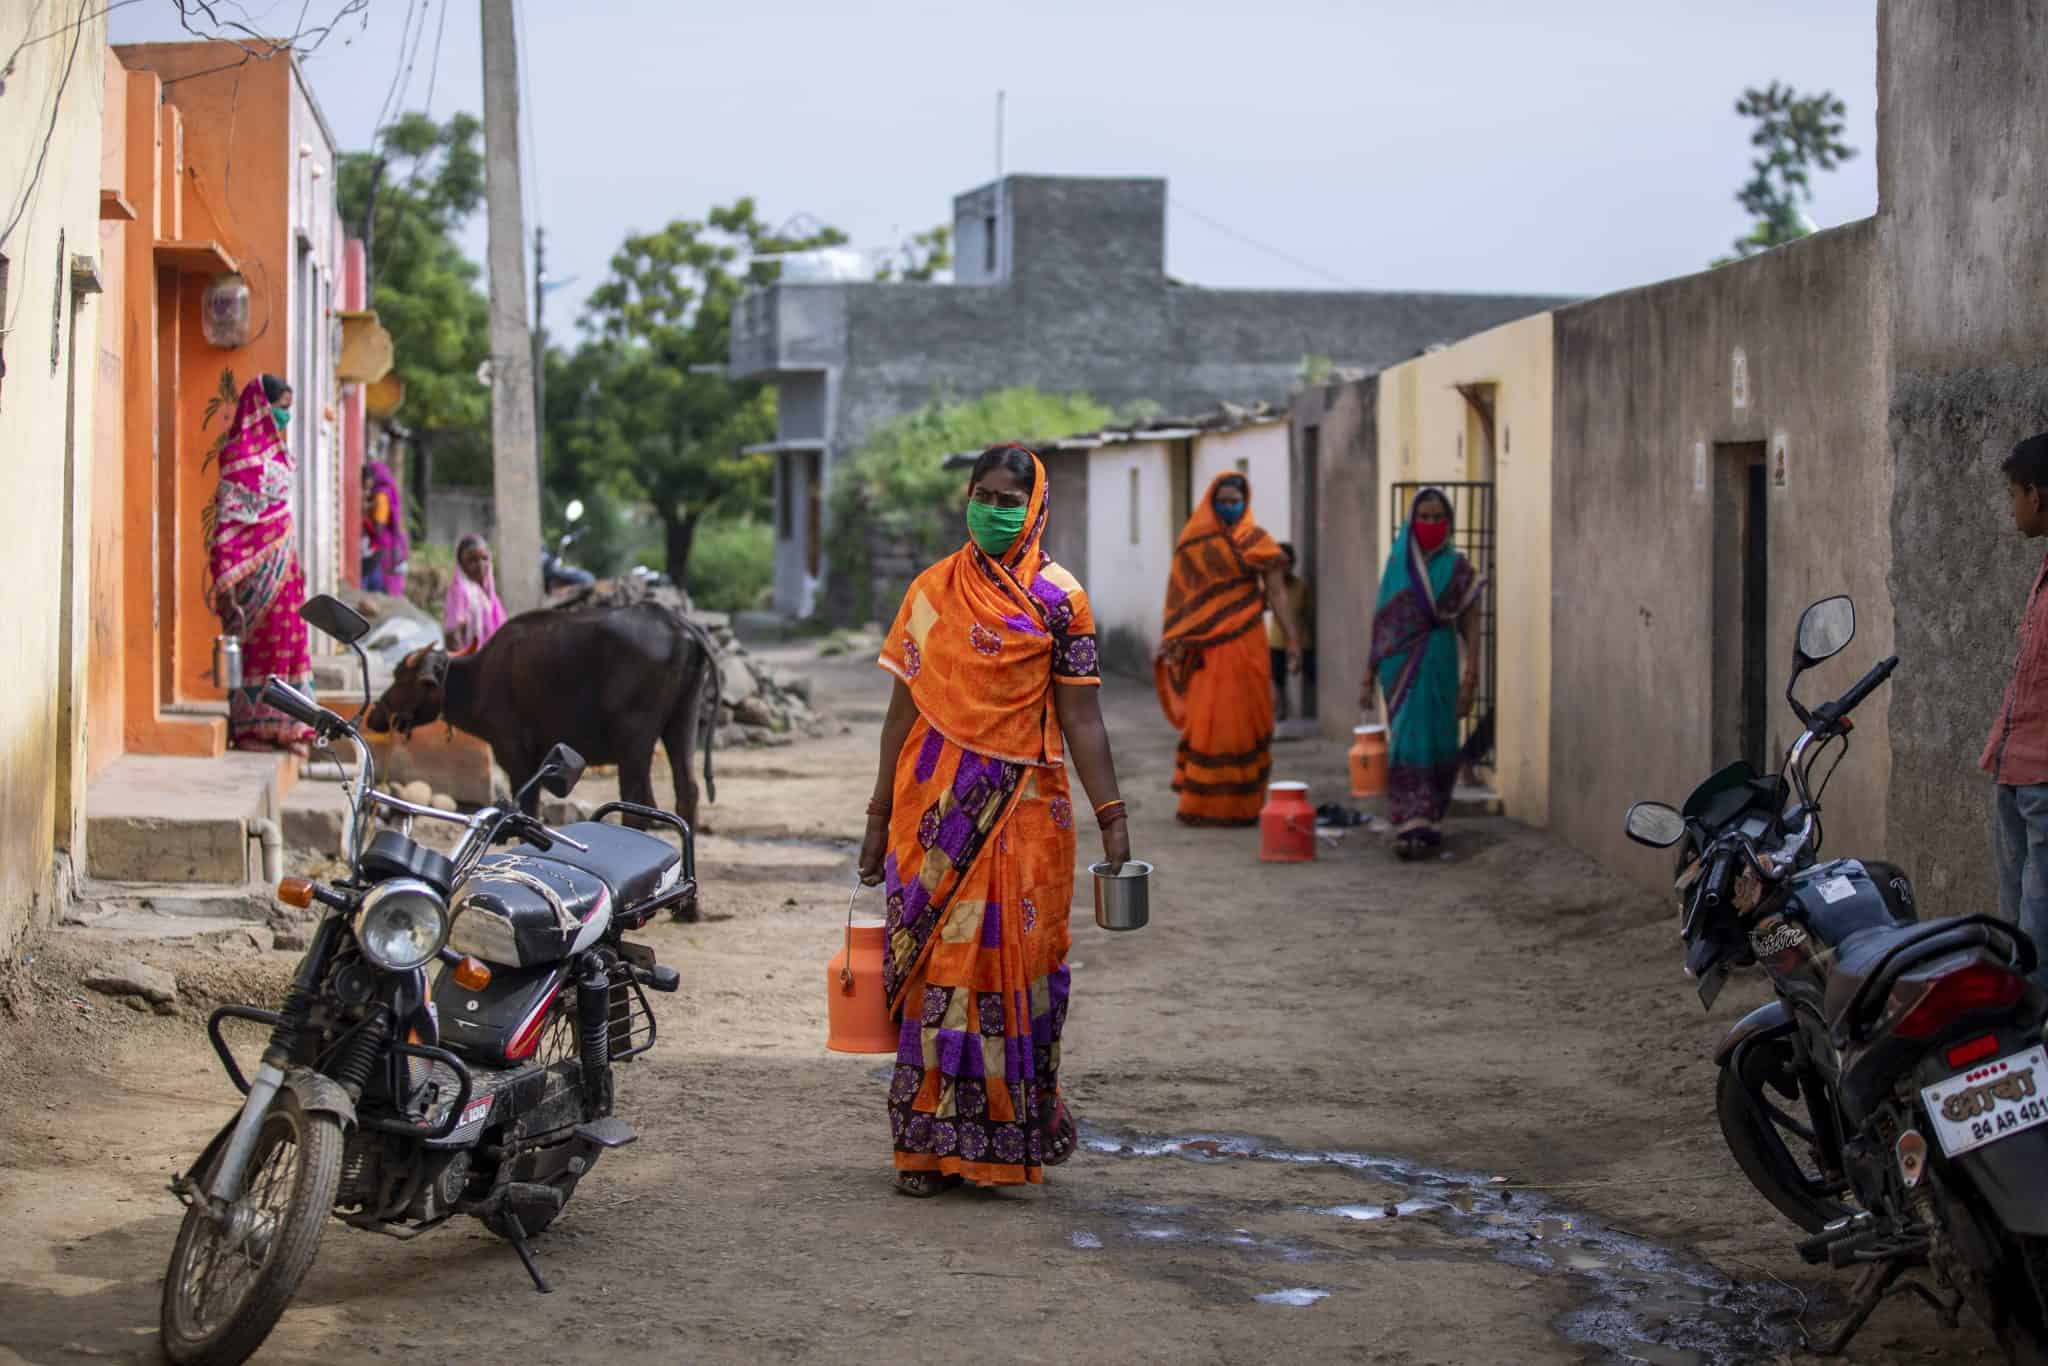 Indian dairy farmers delivering milk in street